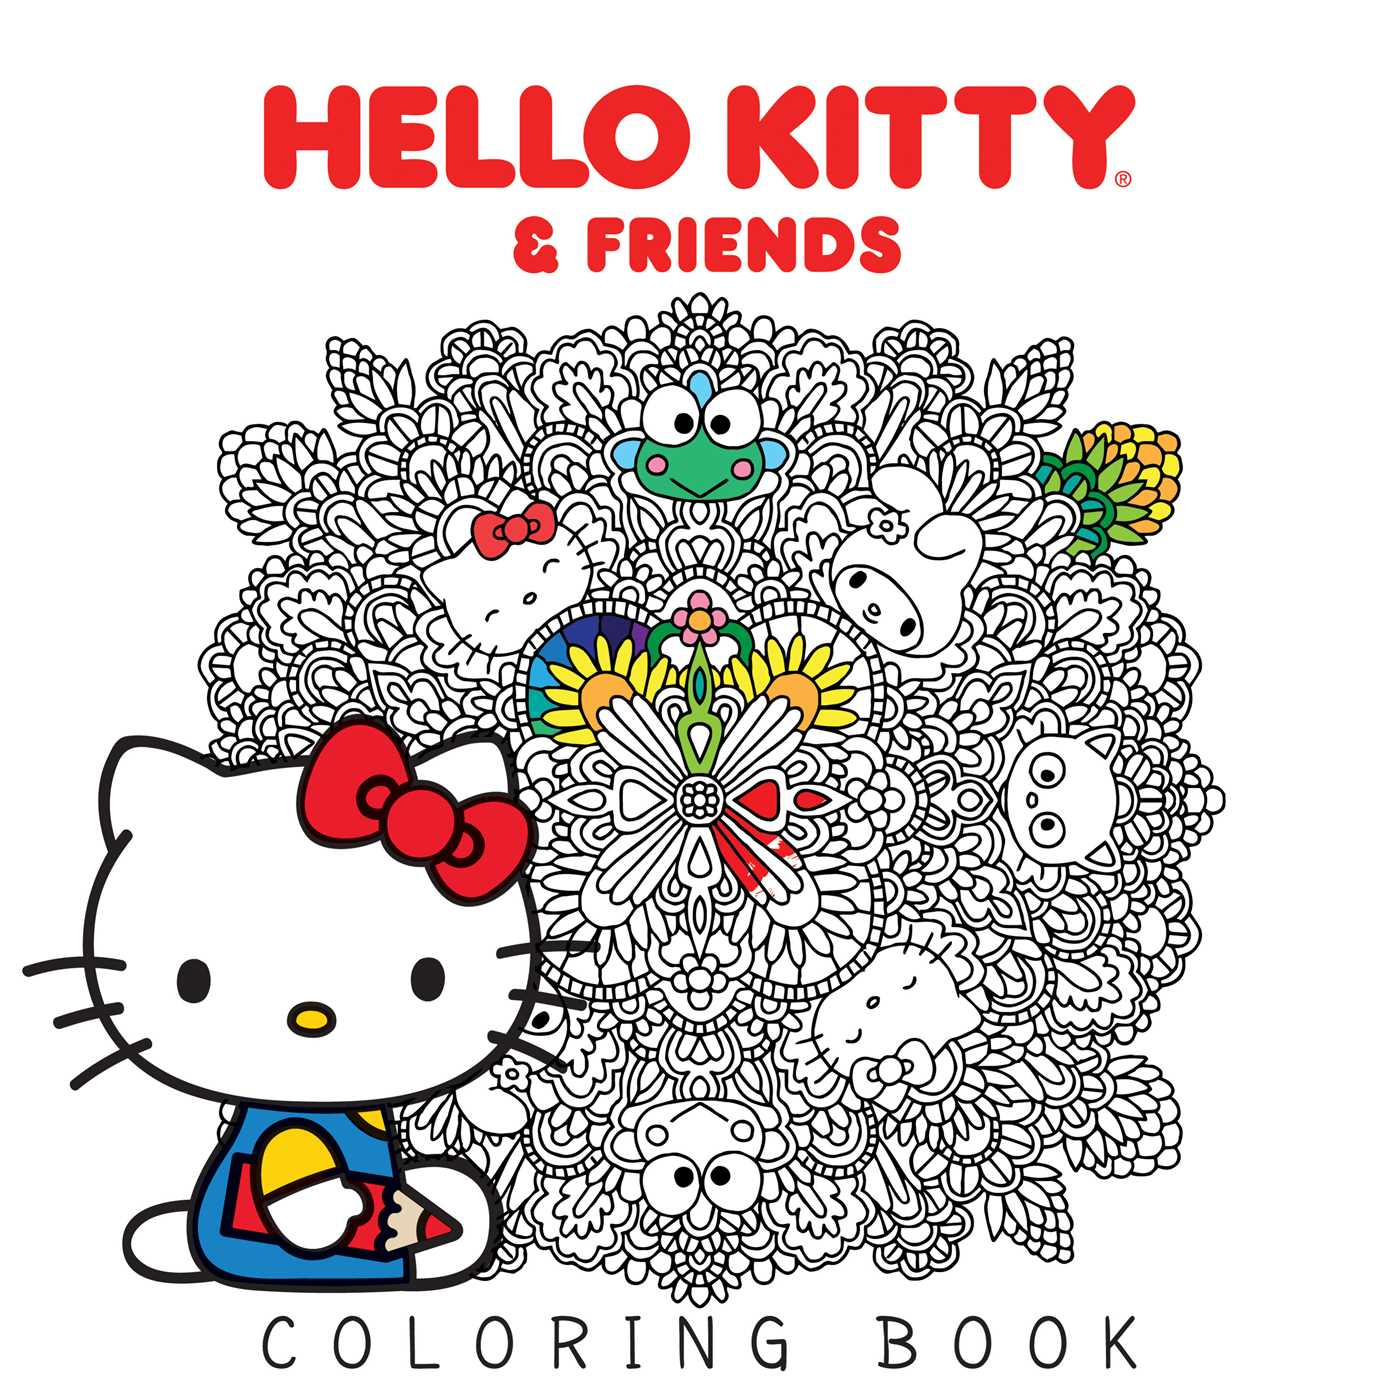 Book Cover Image Jpg Hello Kitty Friends Coloring